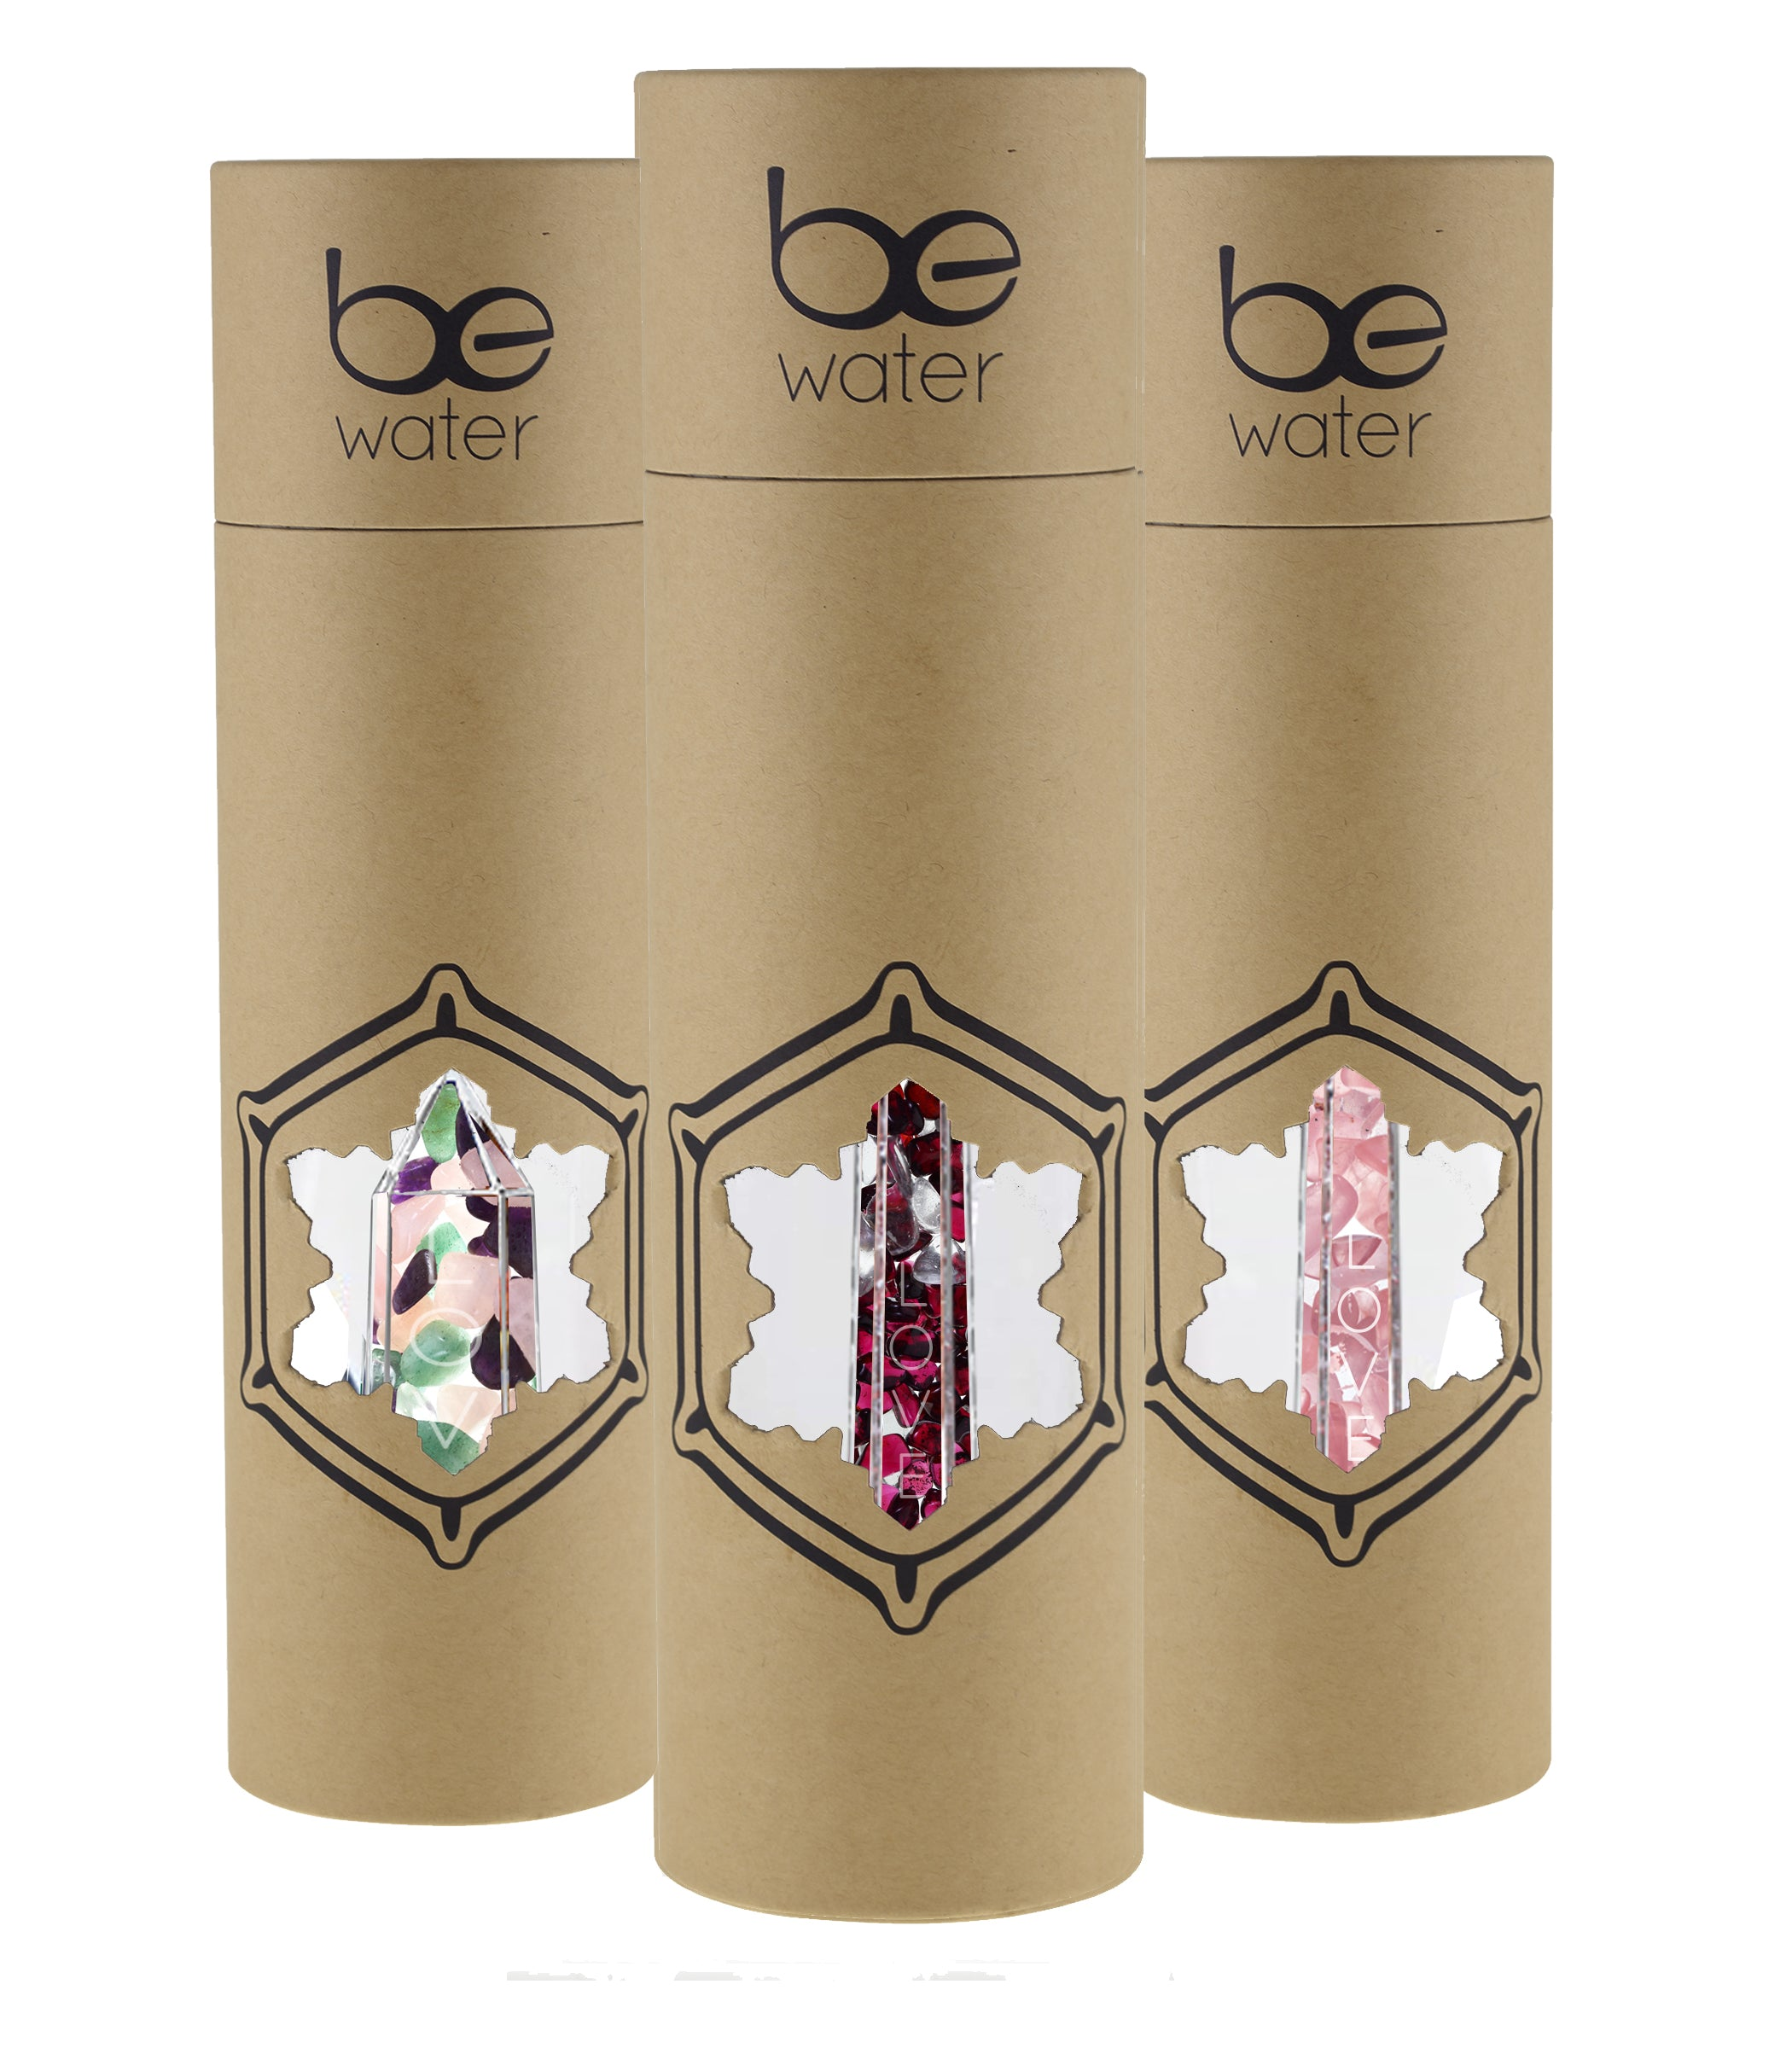 BeLove Packaging